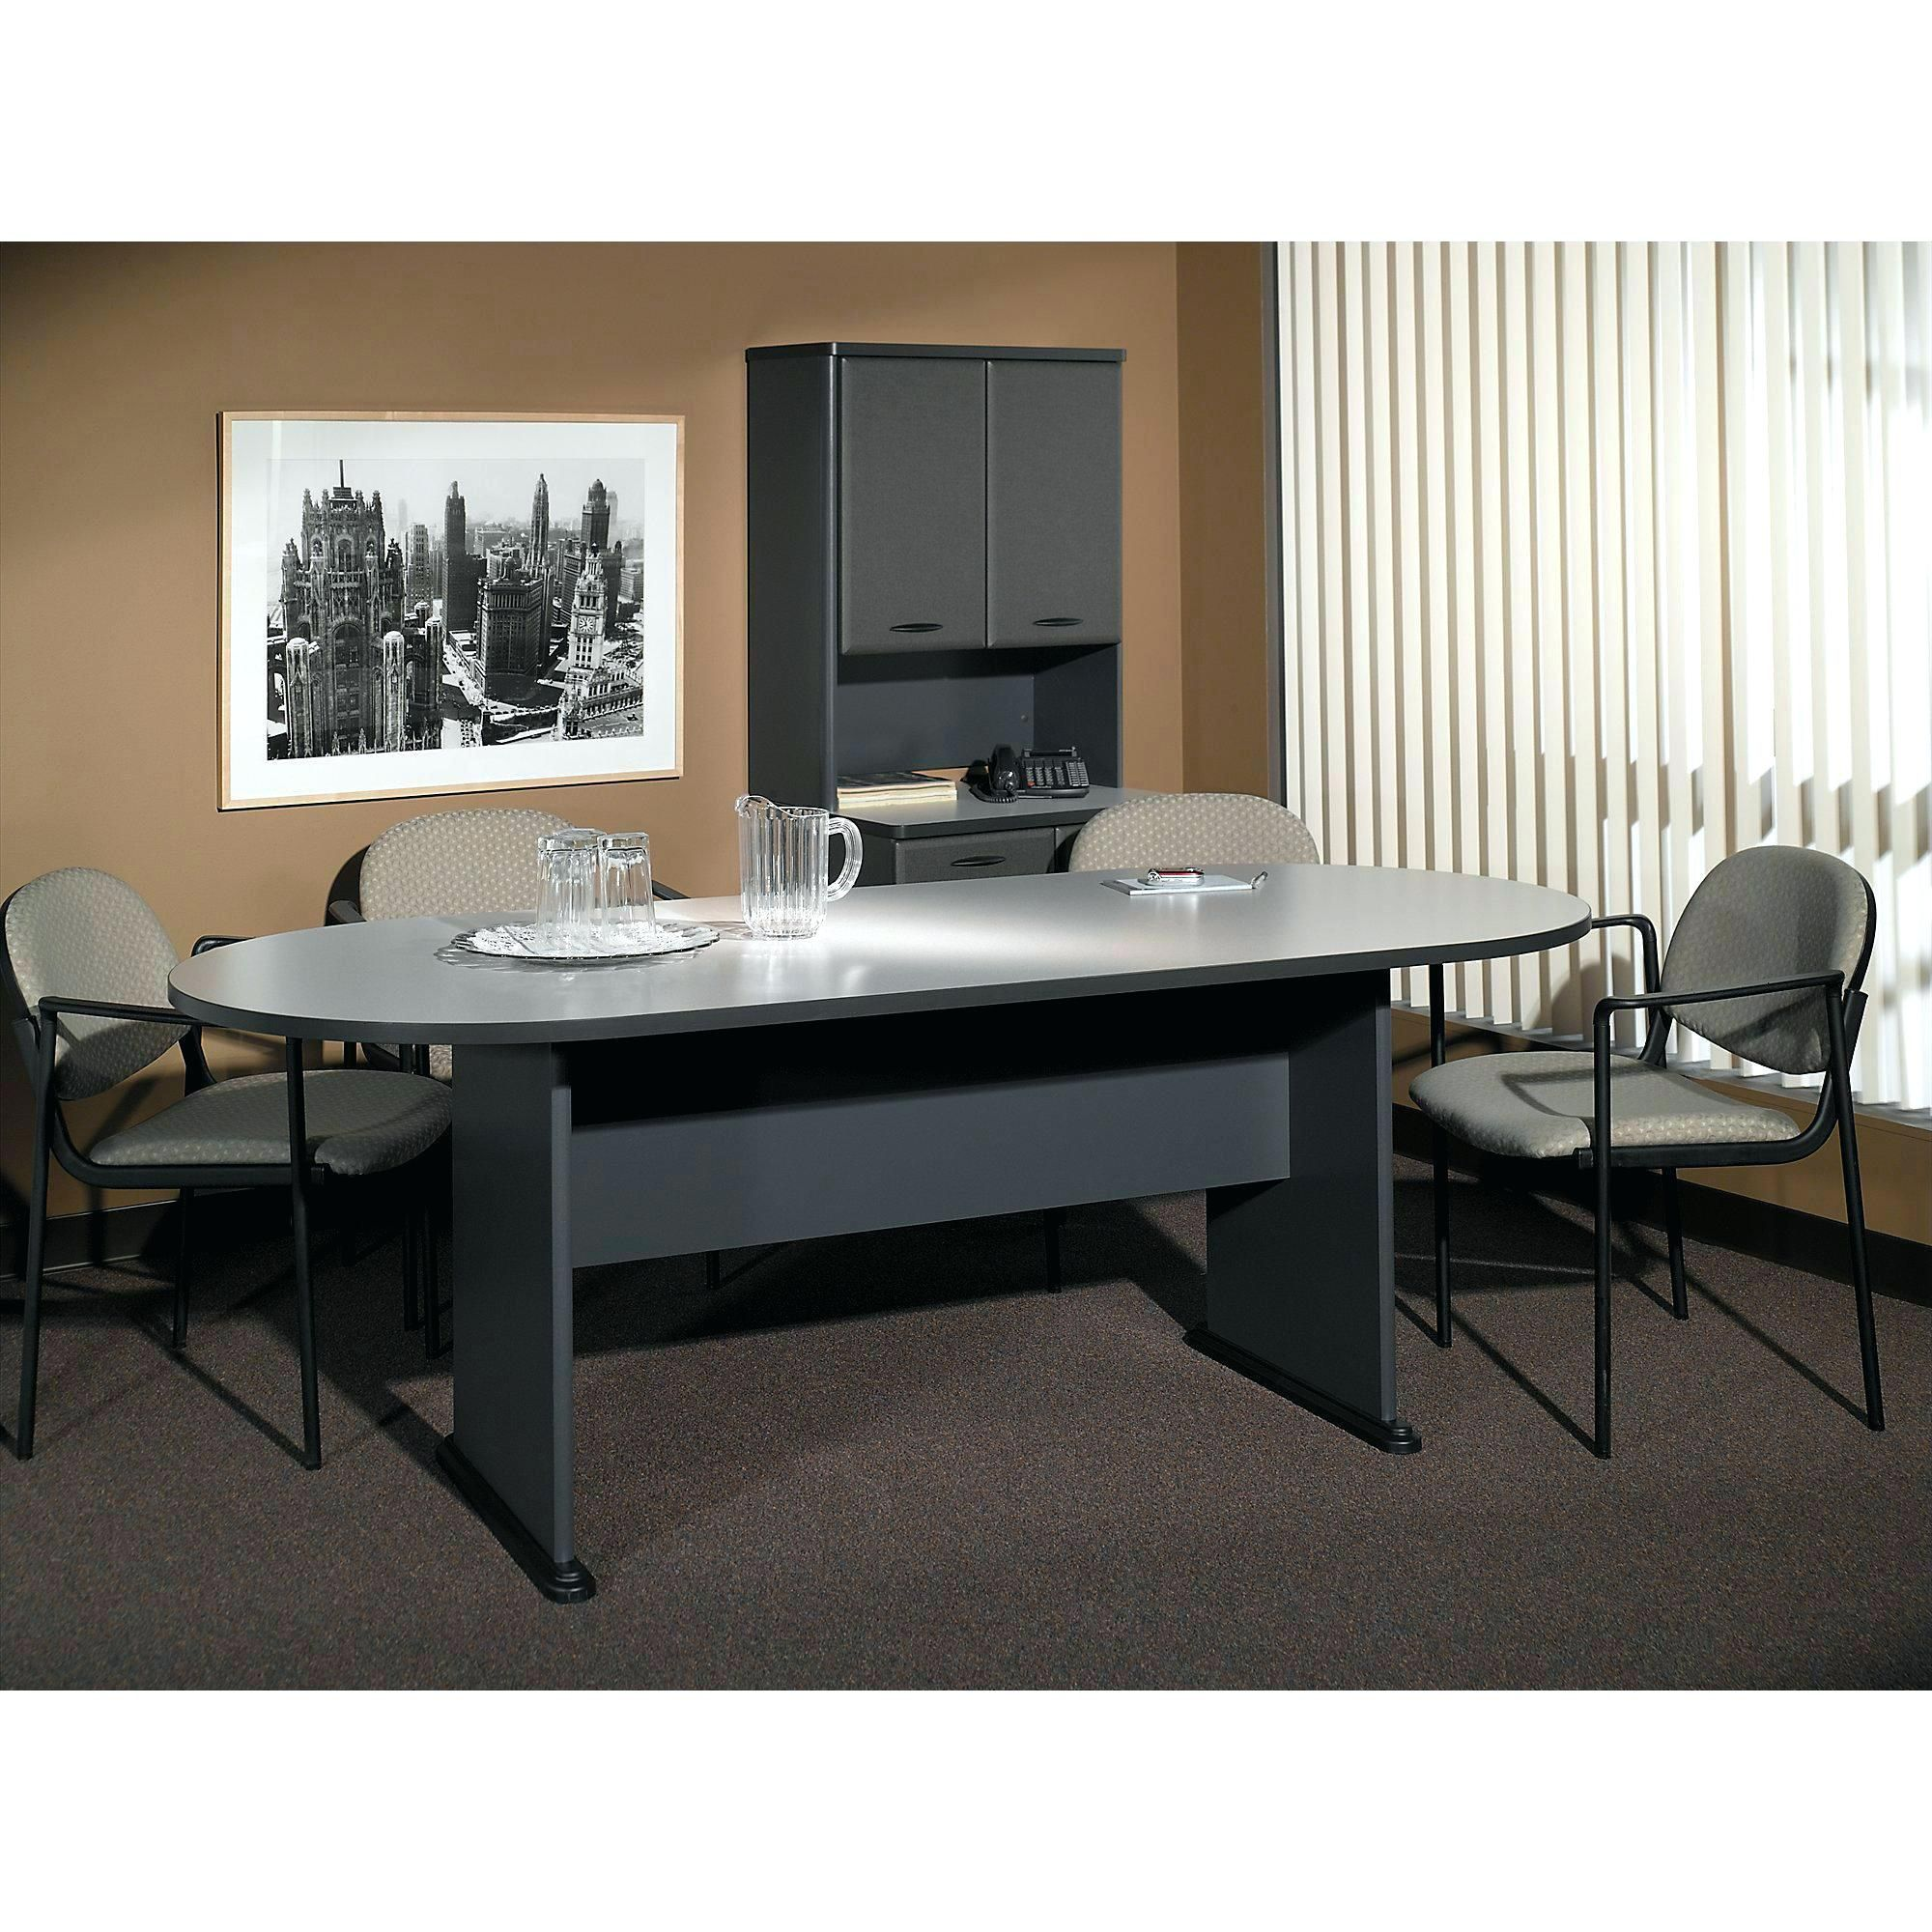 99 Bush Industries Corner Desk Office Furniture For Home Check More At Http